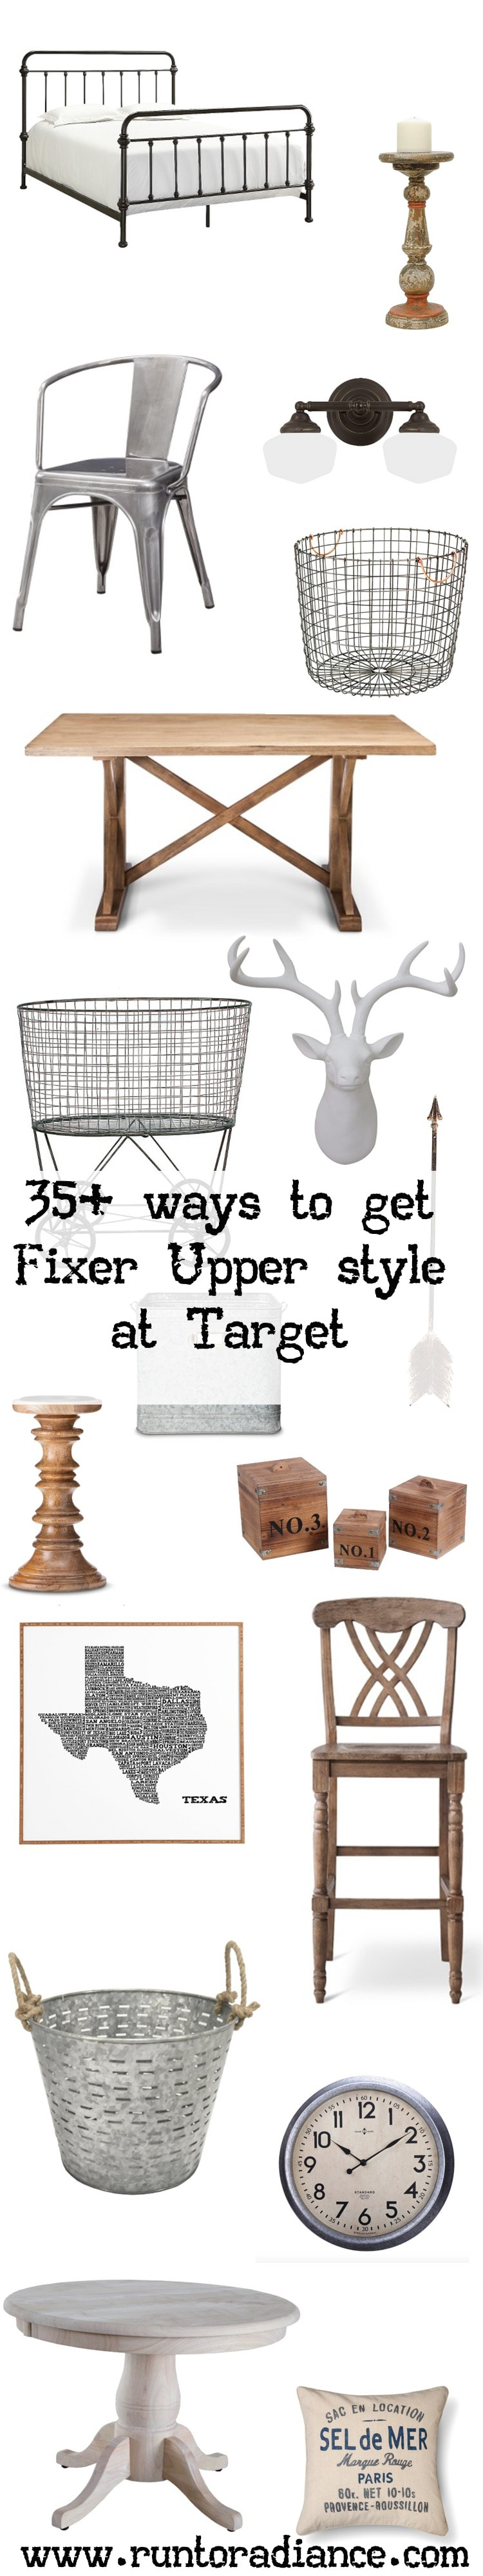 fixer upper style 35 target items that will get you the fixer upper look. Black Bedroom Furniture Sets. Home Design Ideas